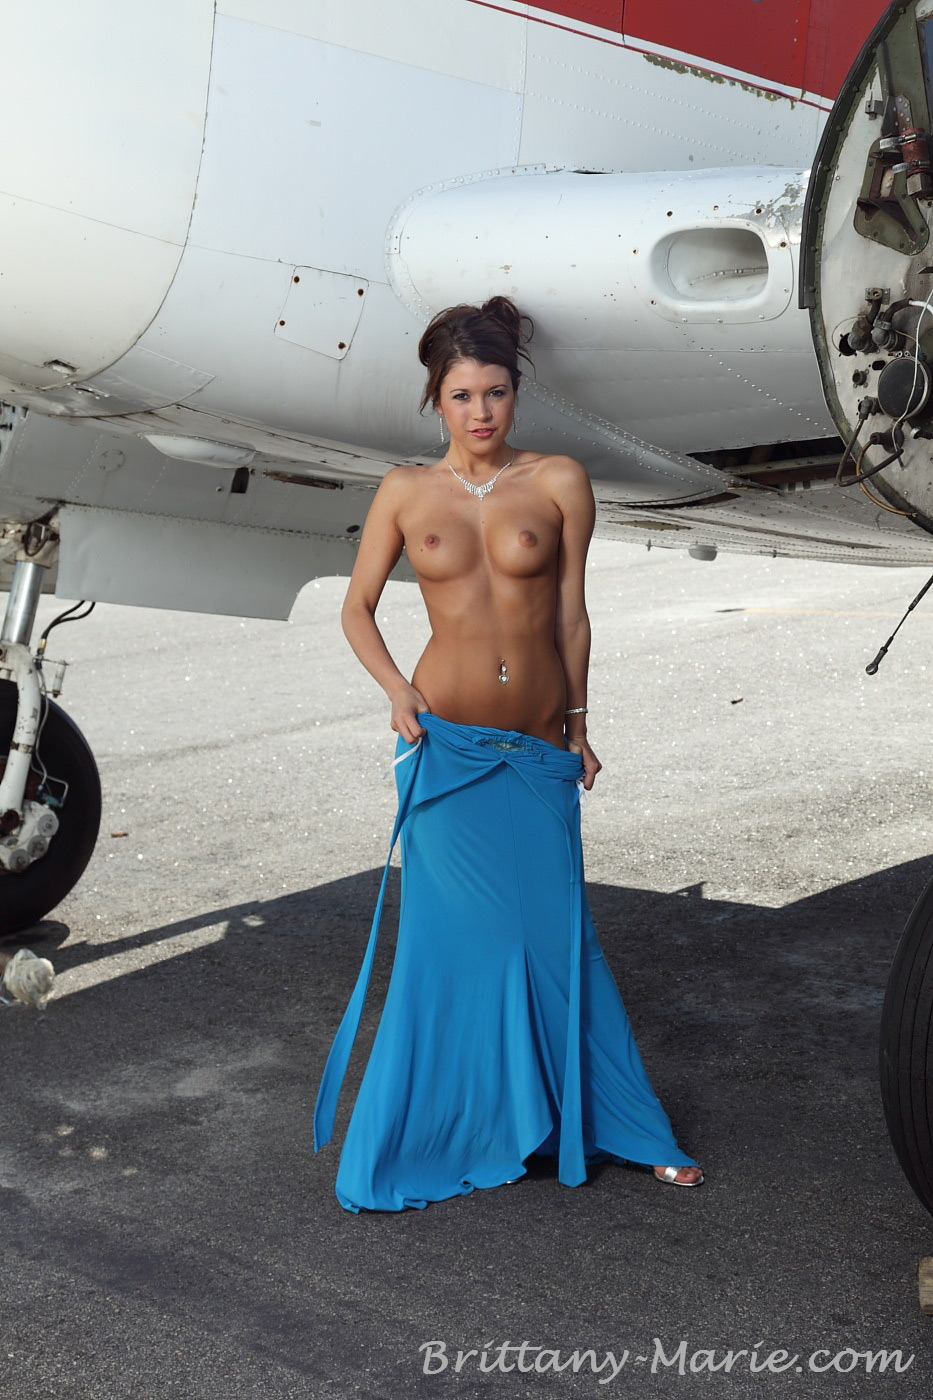 naked-on-airplanes-hot-anorexic-porn